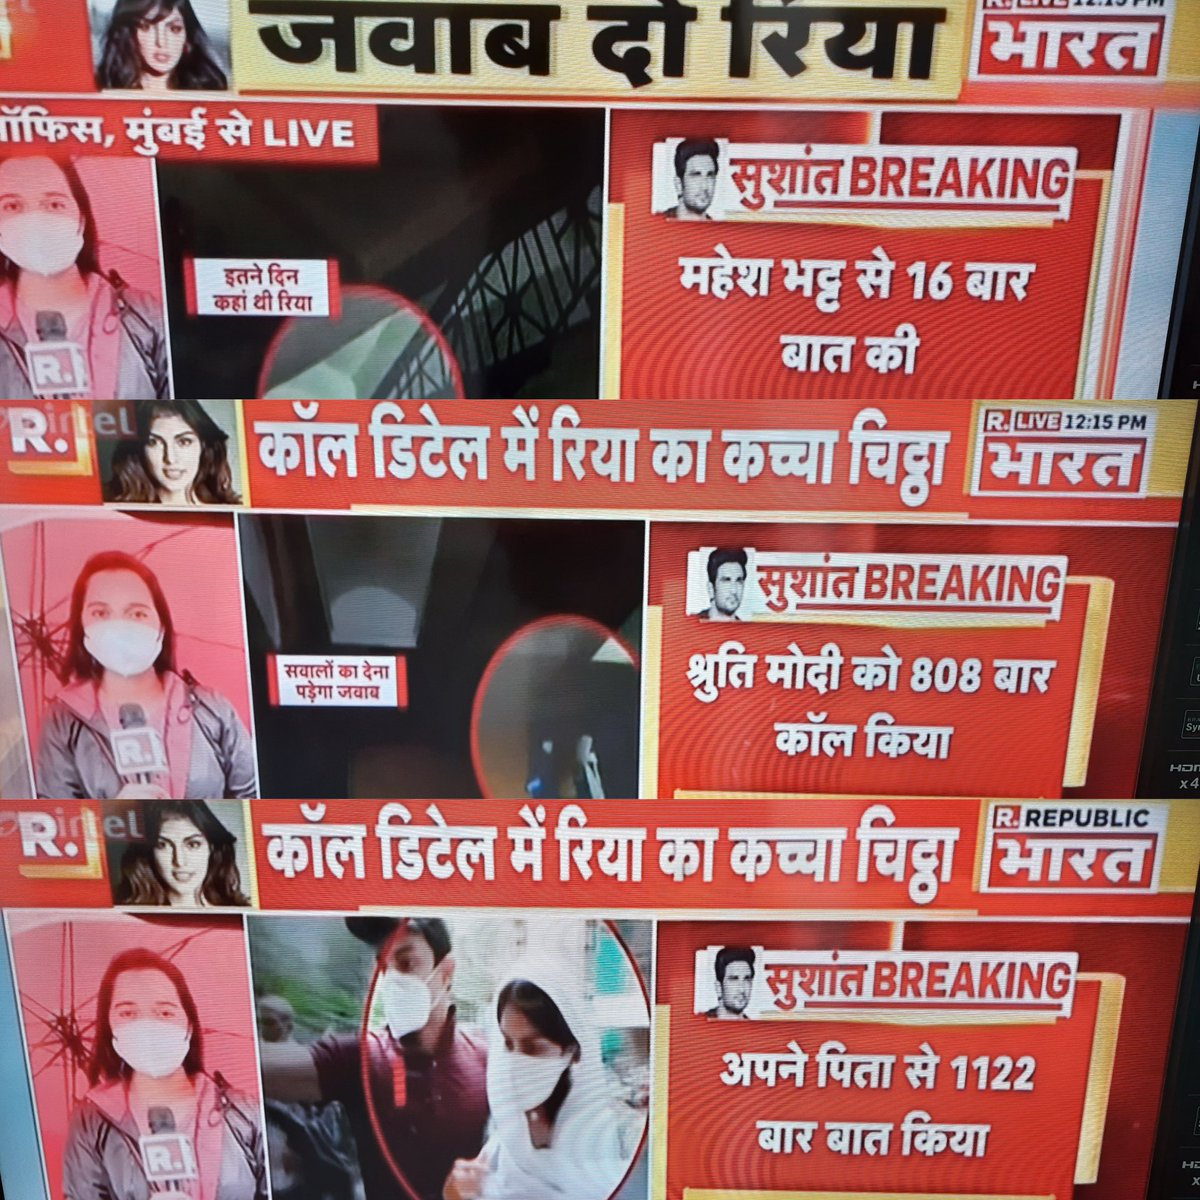 Rhea blocked Sushant from 8th to 13th June. And Continuously she was on call with his Father, manager, Mahesh Bhatt. Very well planned girl. She also told Pithani that she was a call away. A FAIR CBI INVESTIGATION Is MUST.  #Warriors4SSRpic.twitter.com/KziUrIhmlZ